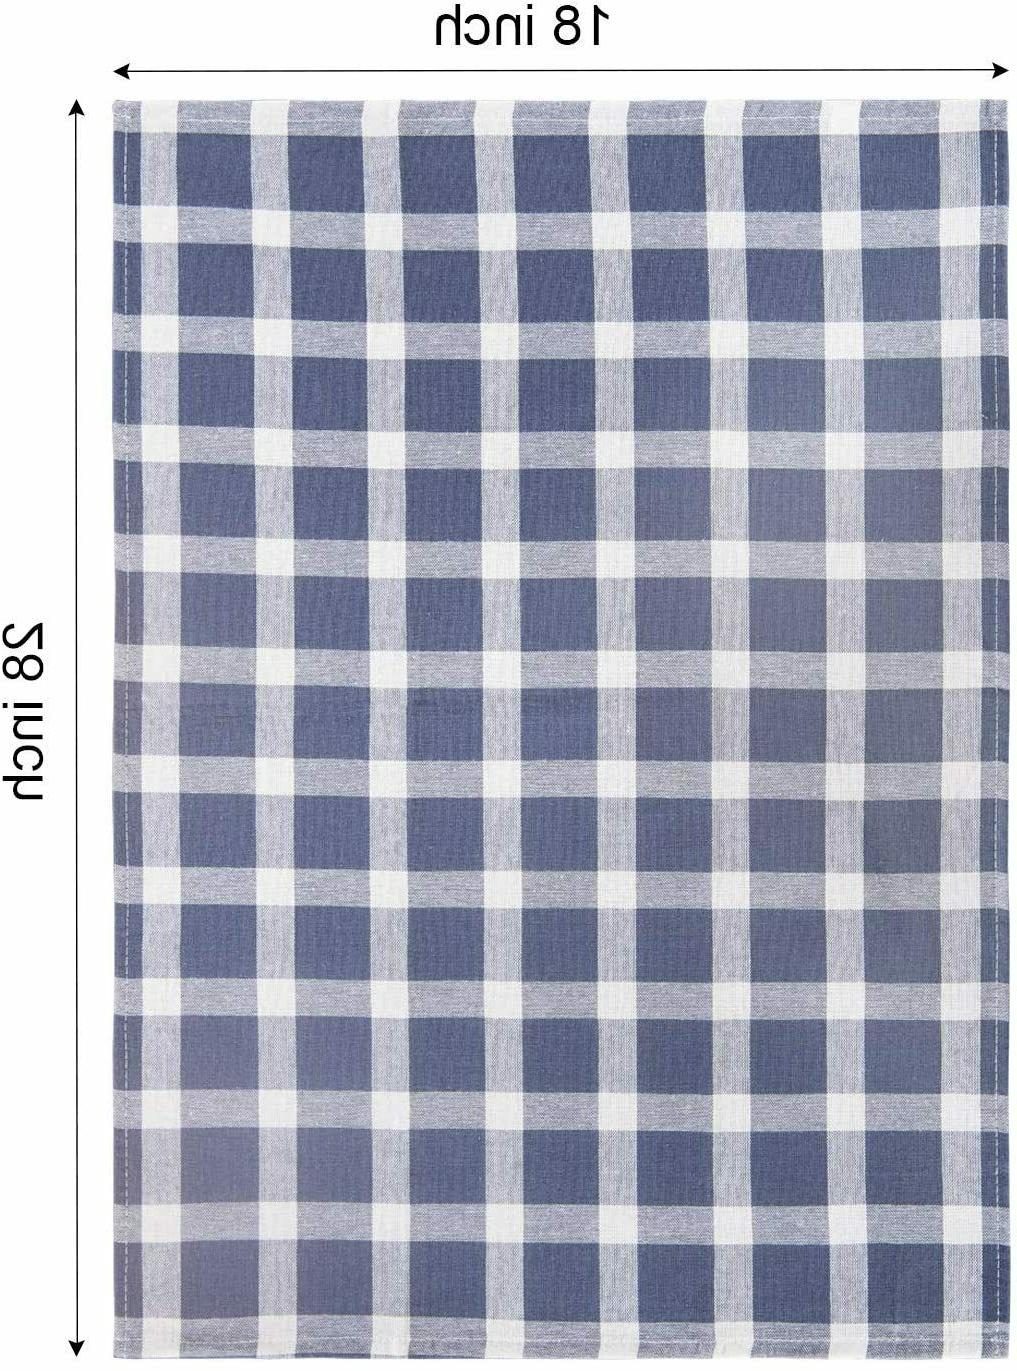 5 Dish Cotton Towel For